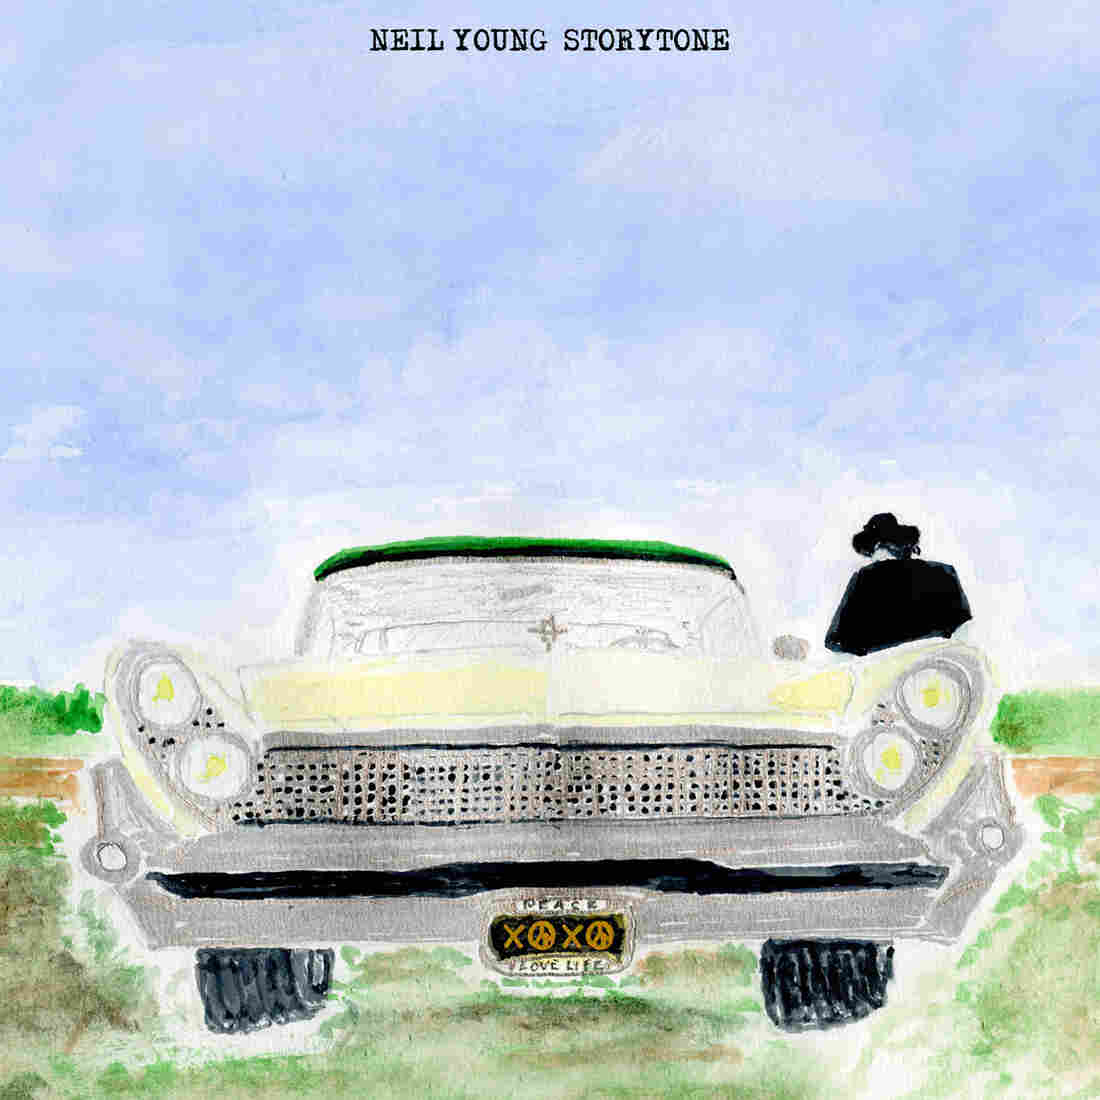 Neil Young's new album, Storytone, comes out Nov. 4.